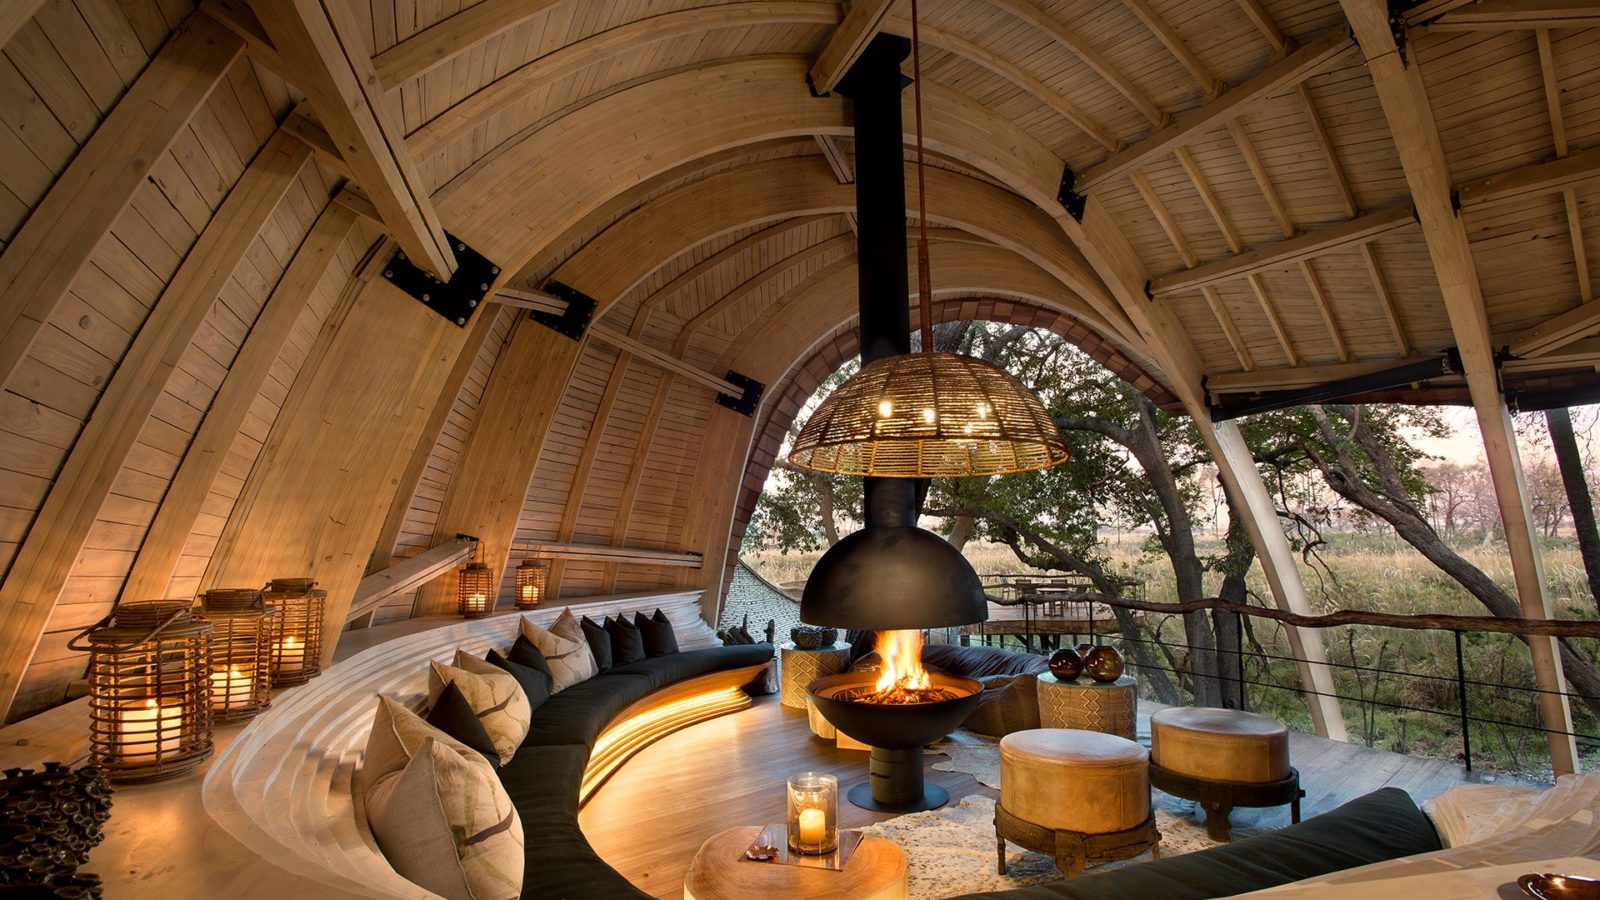 In the Delta, you'll find some of the world's wildest and most spectacular game lodges and although prices can be high, it is the price of success.